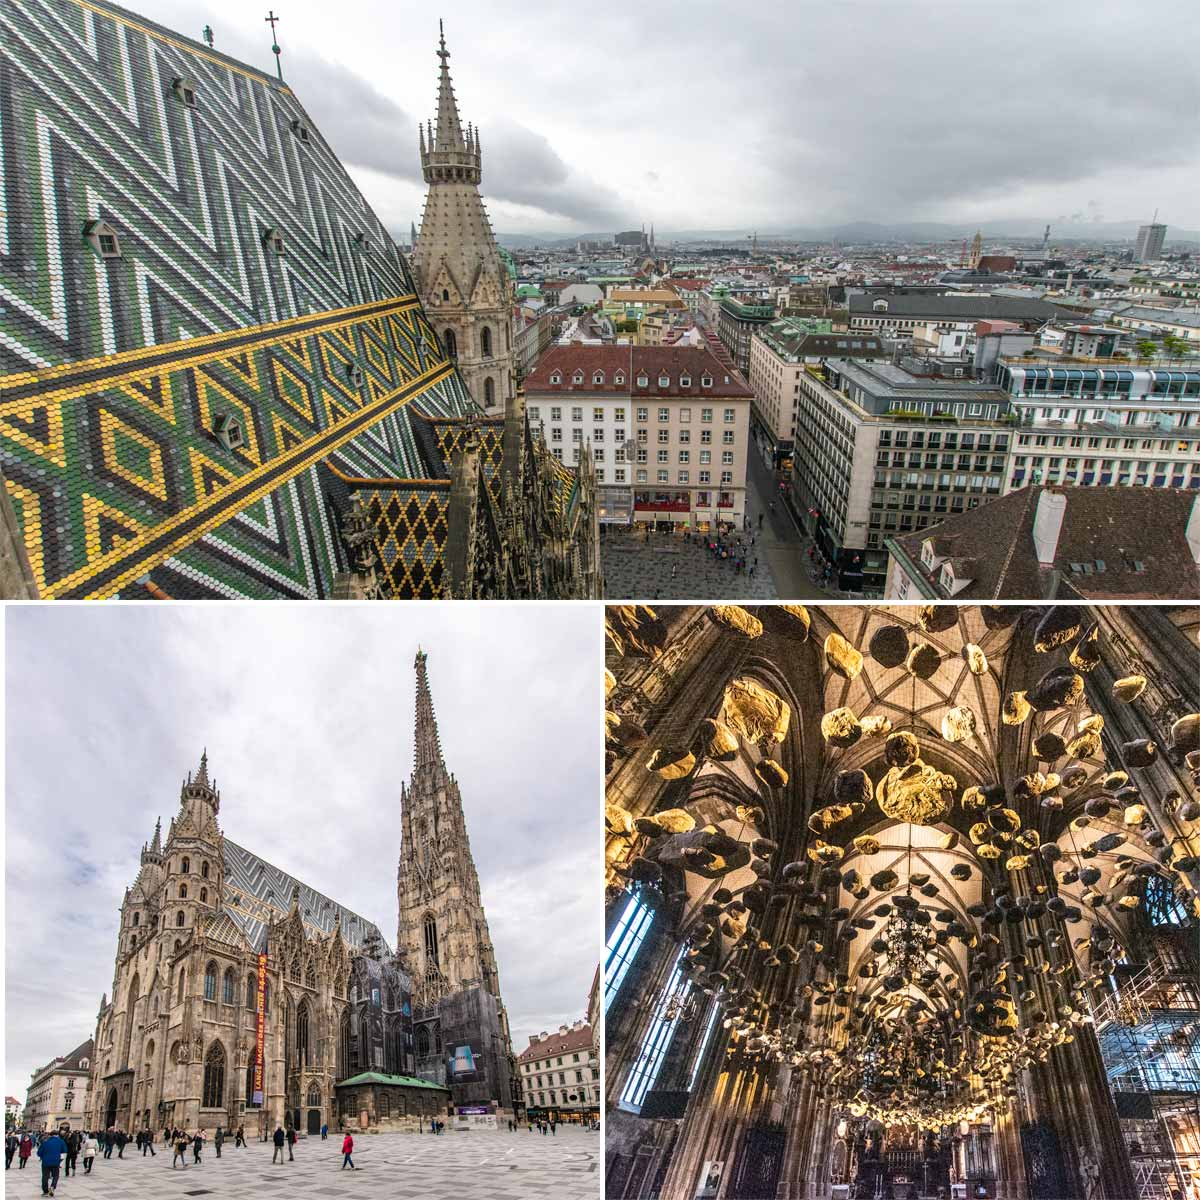 3 days in Vienna - Stephansdom